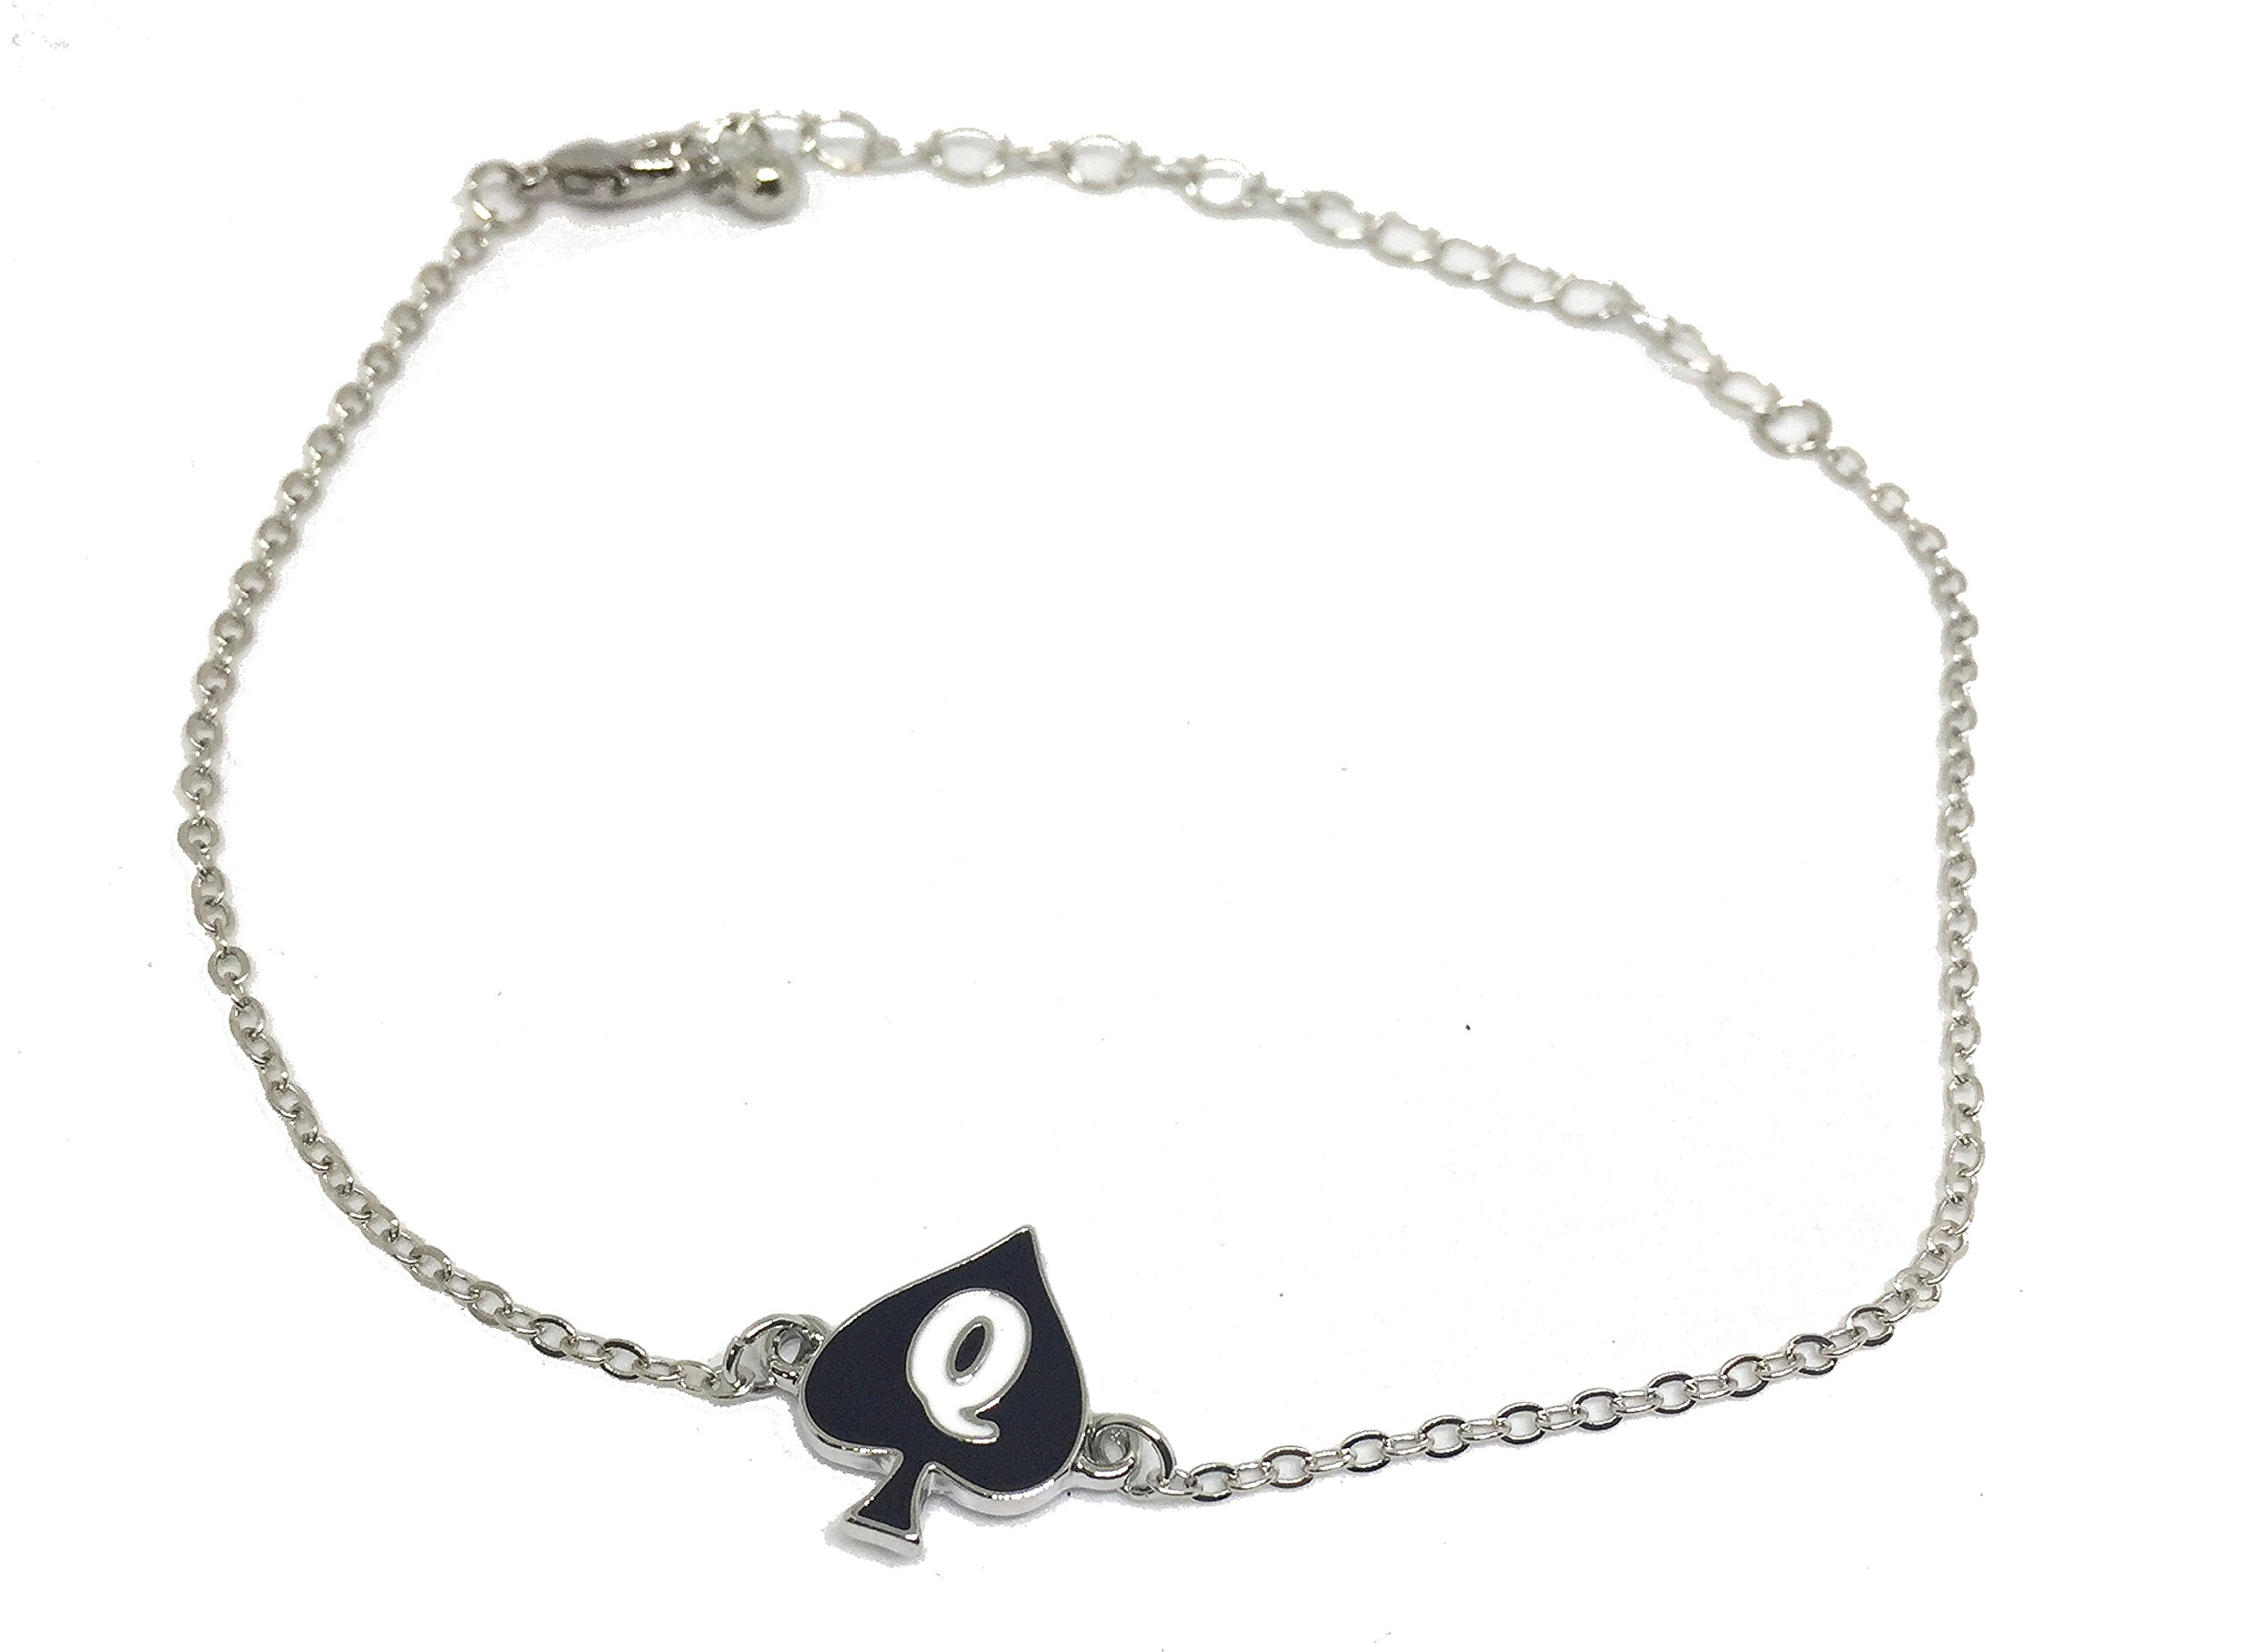 Alternative Intentions Q Spade (Queen of Spades) Charm Anklets in Black Silver and Gold - Hotwife - Cuckoldress (Silver)